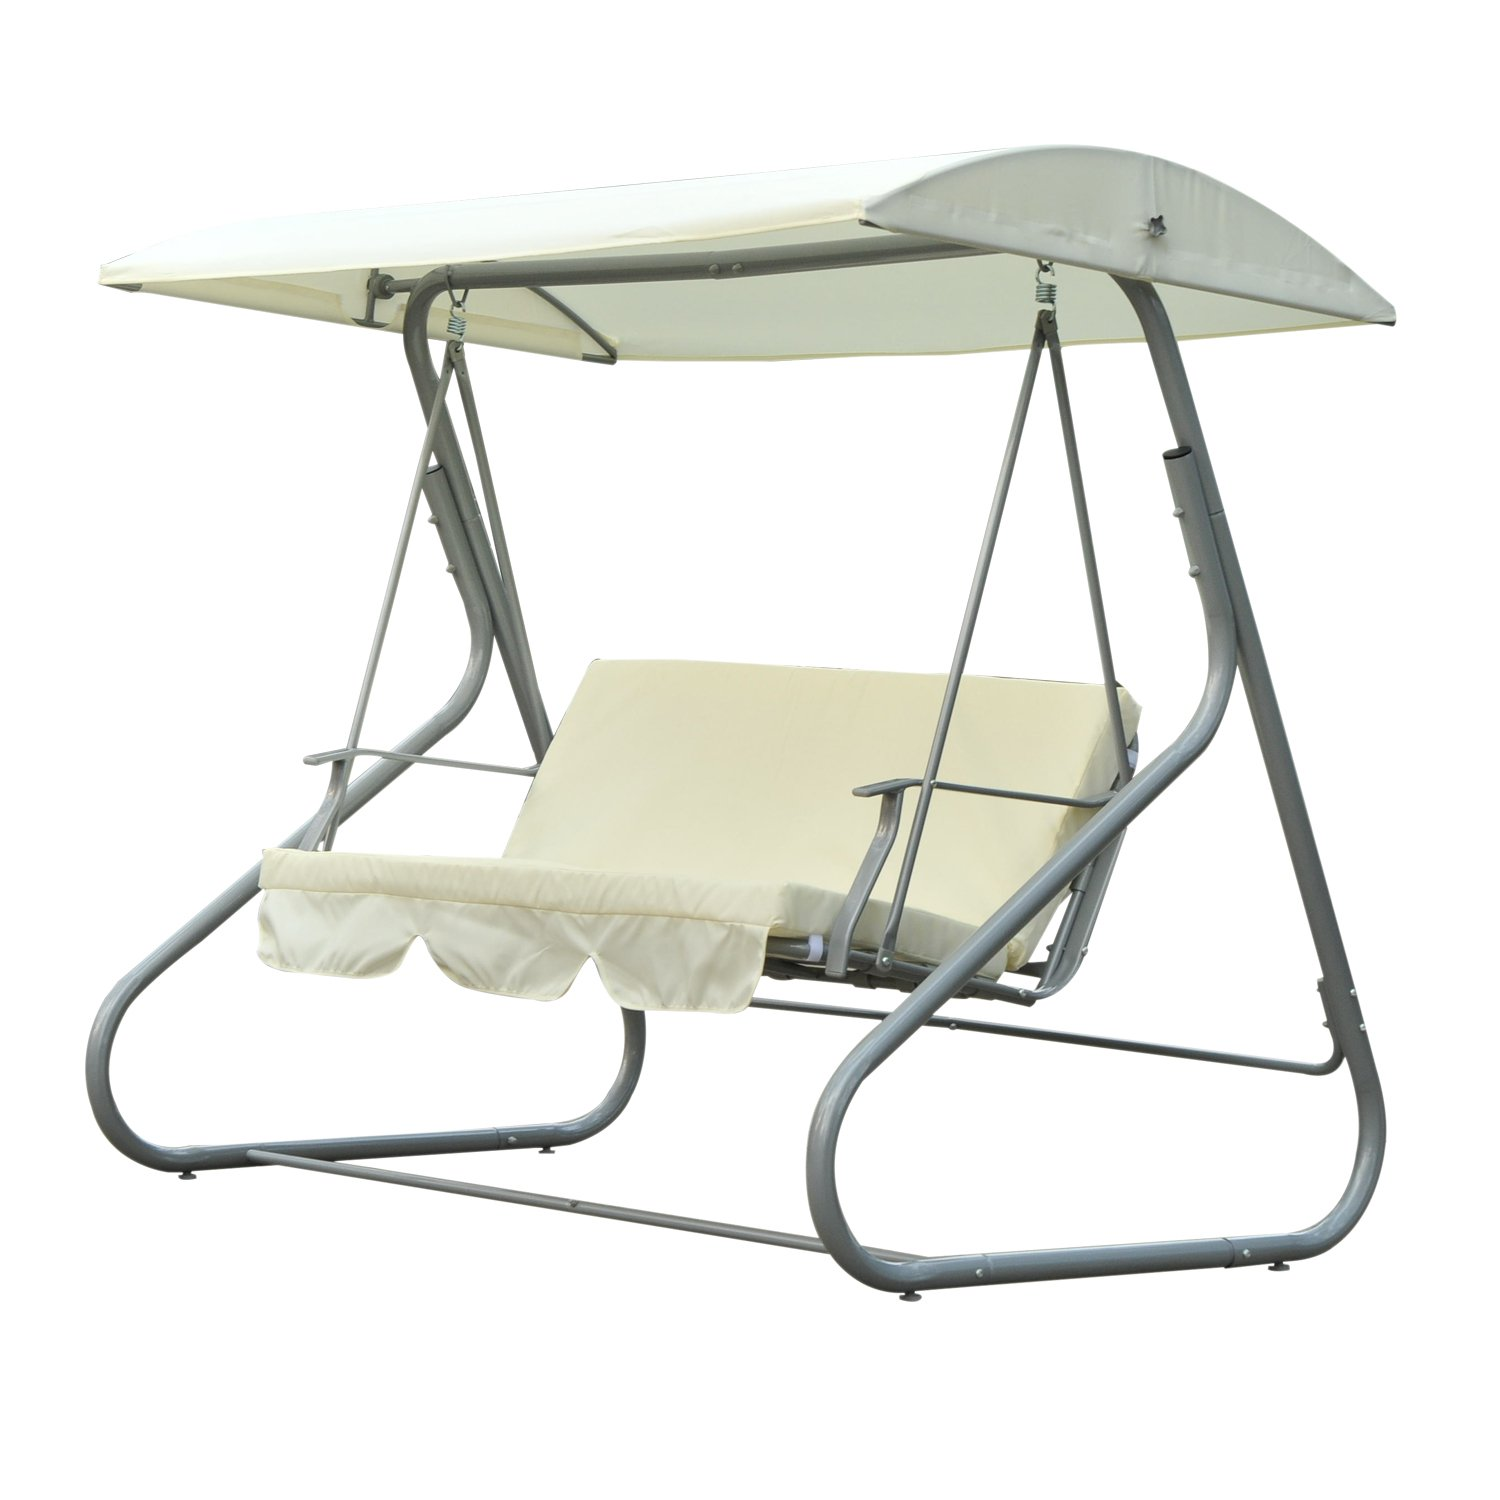 Outsunny 3 Person Patio Swing Chair with Canopy Shade Cream White by Aosom LLC